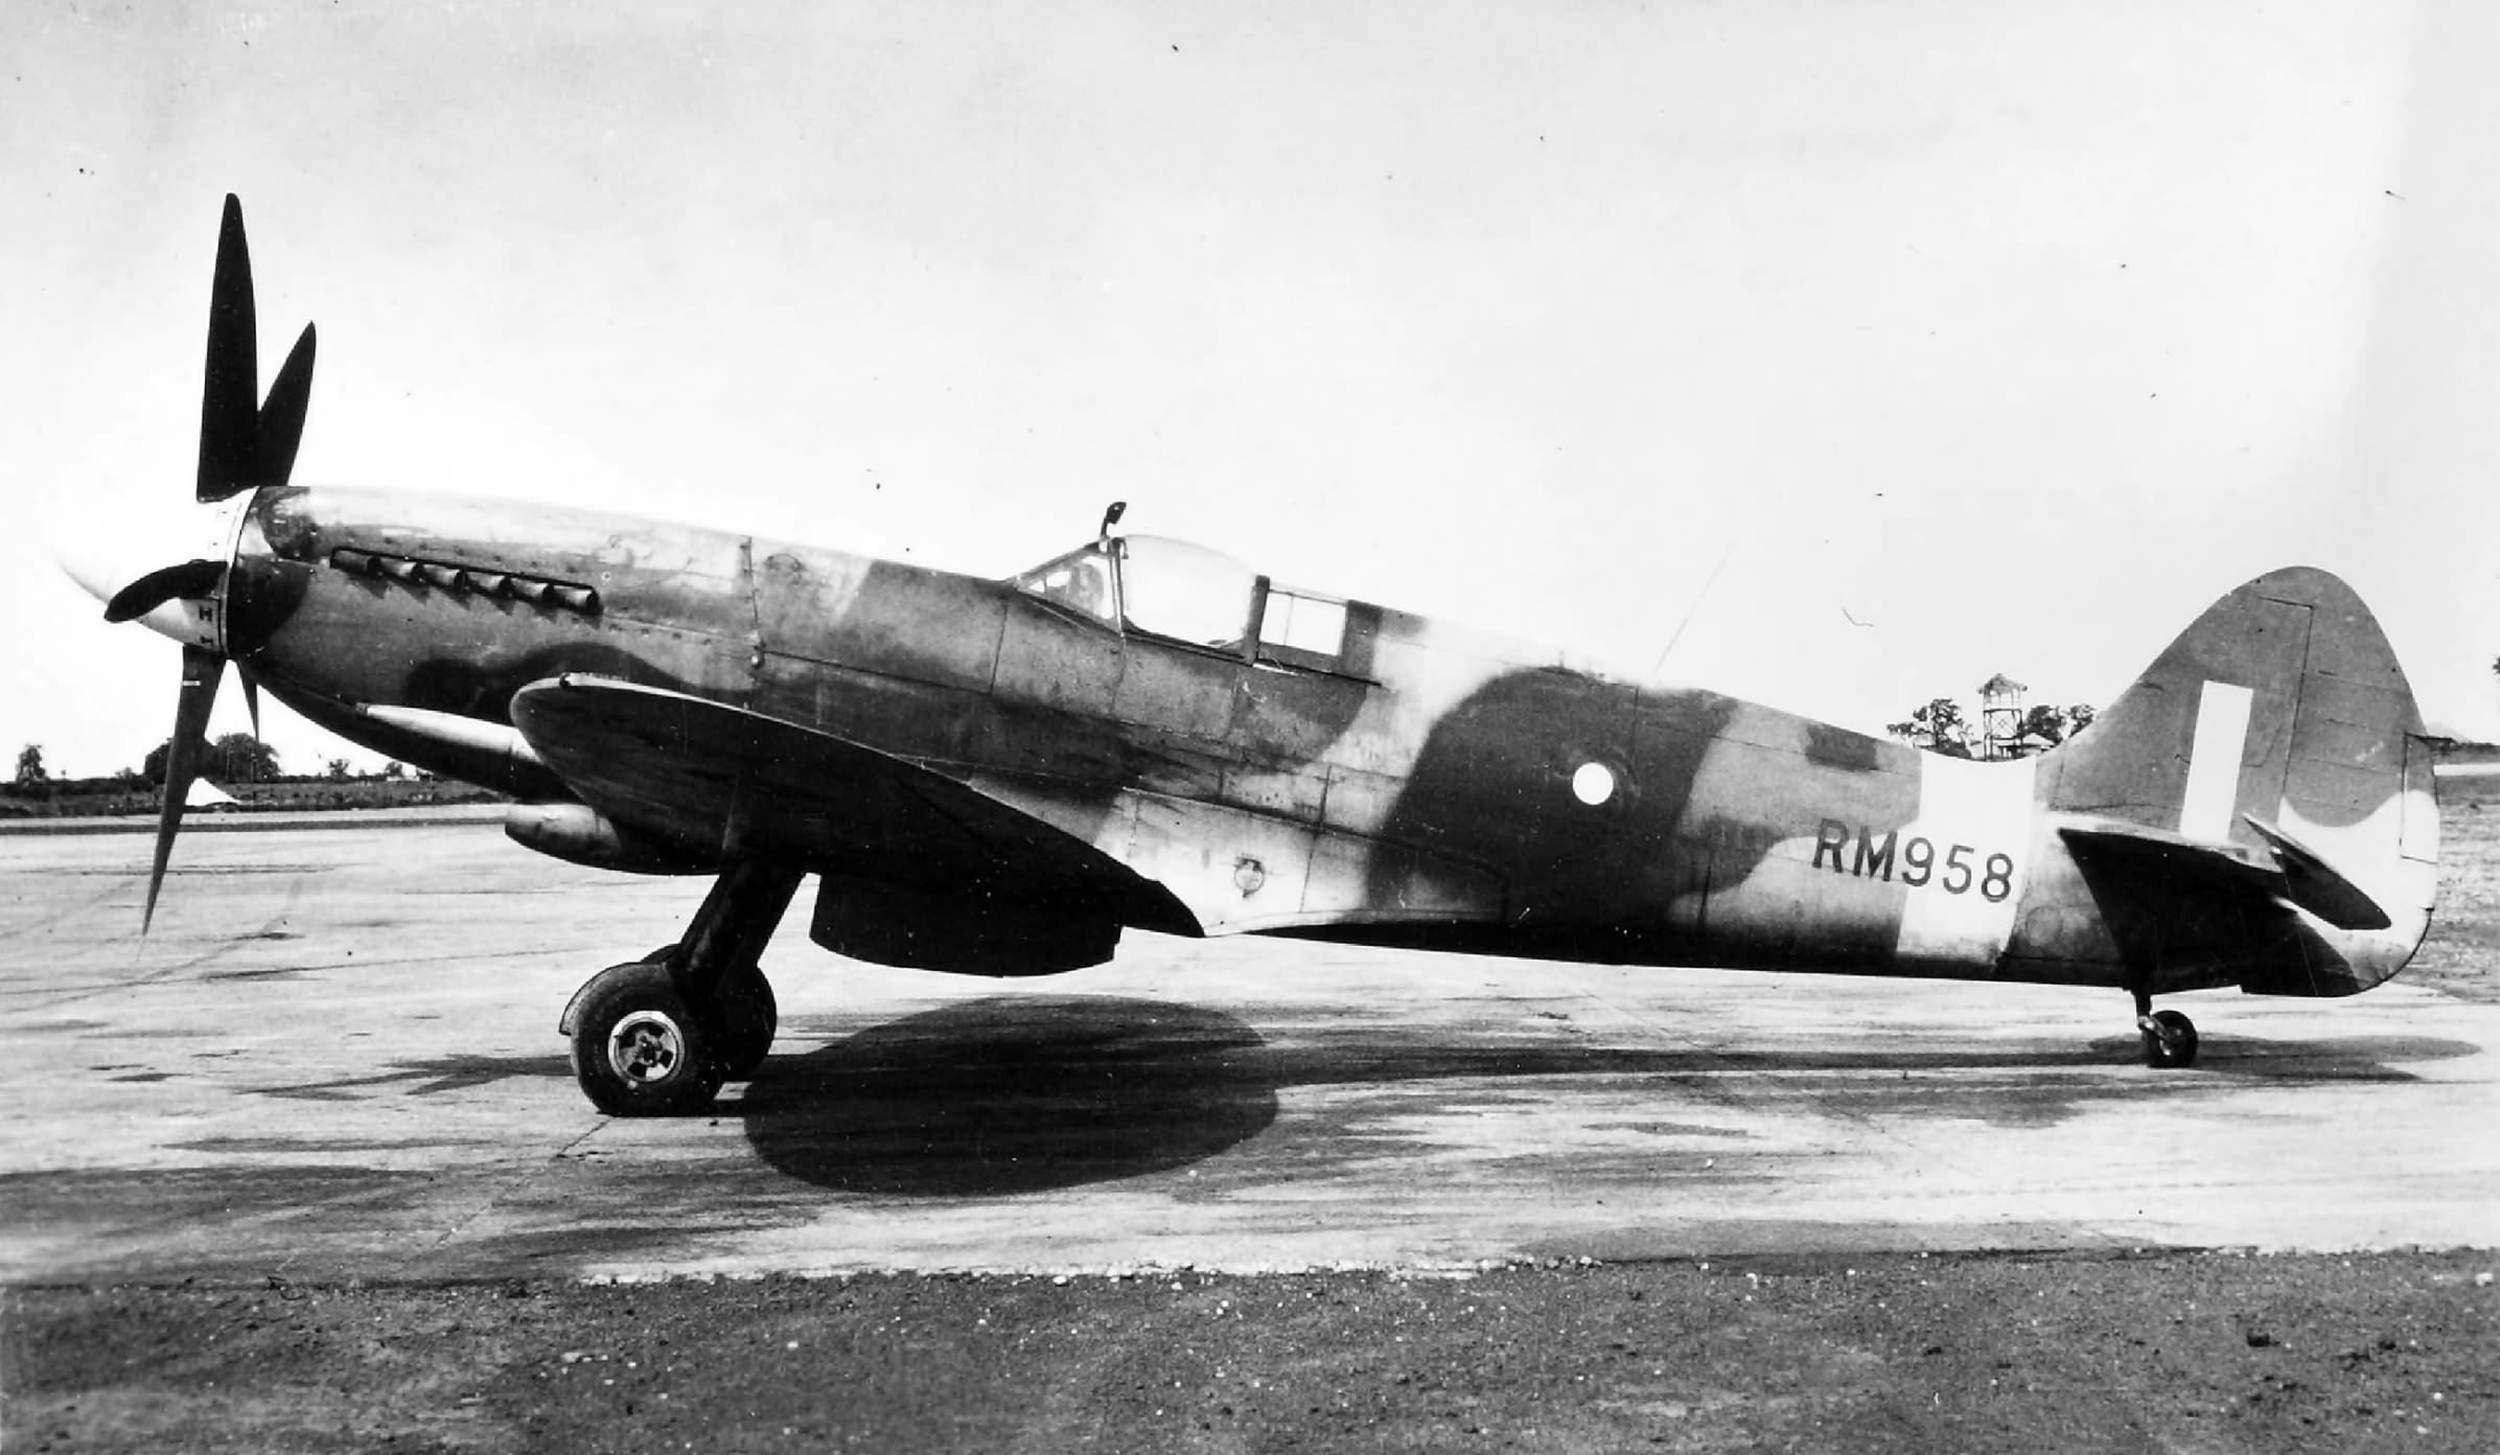 Spitfire XIV RAF RM958 in India web 01